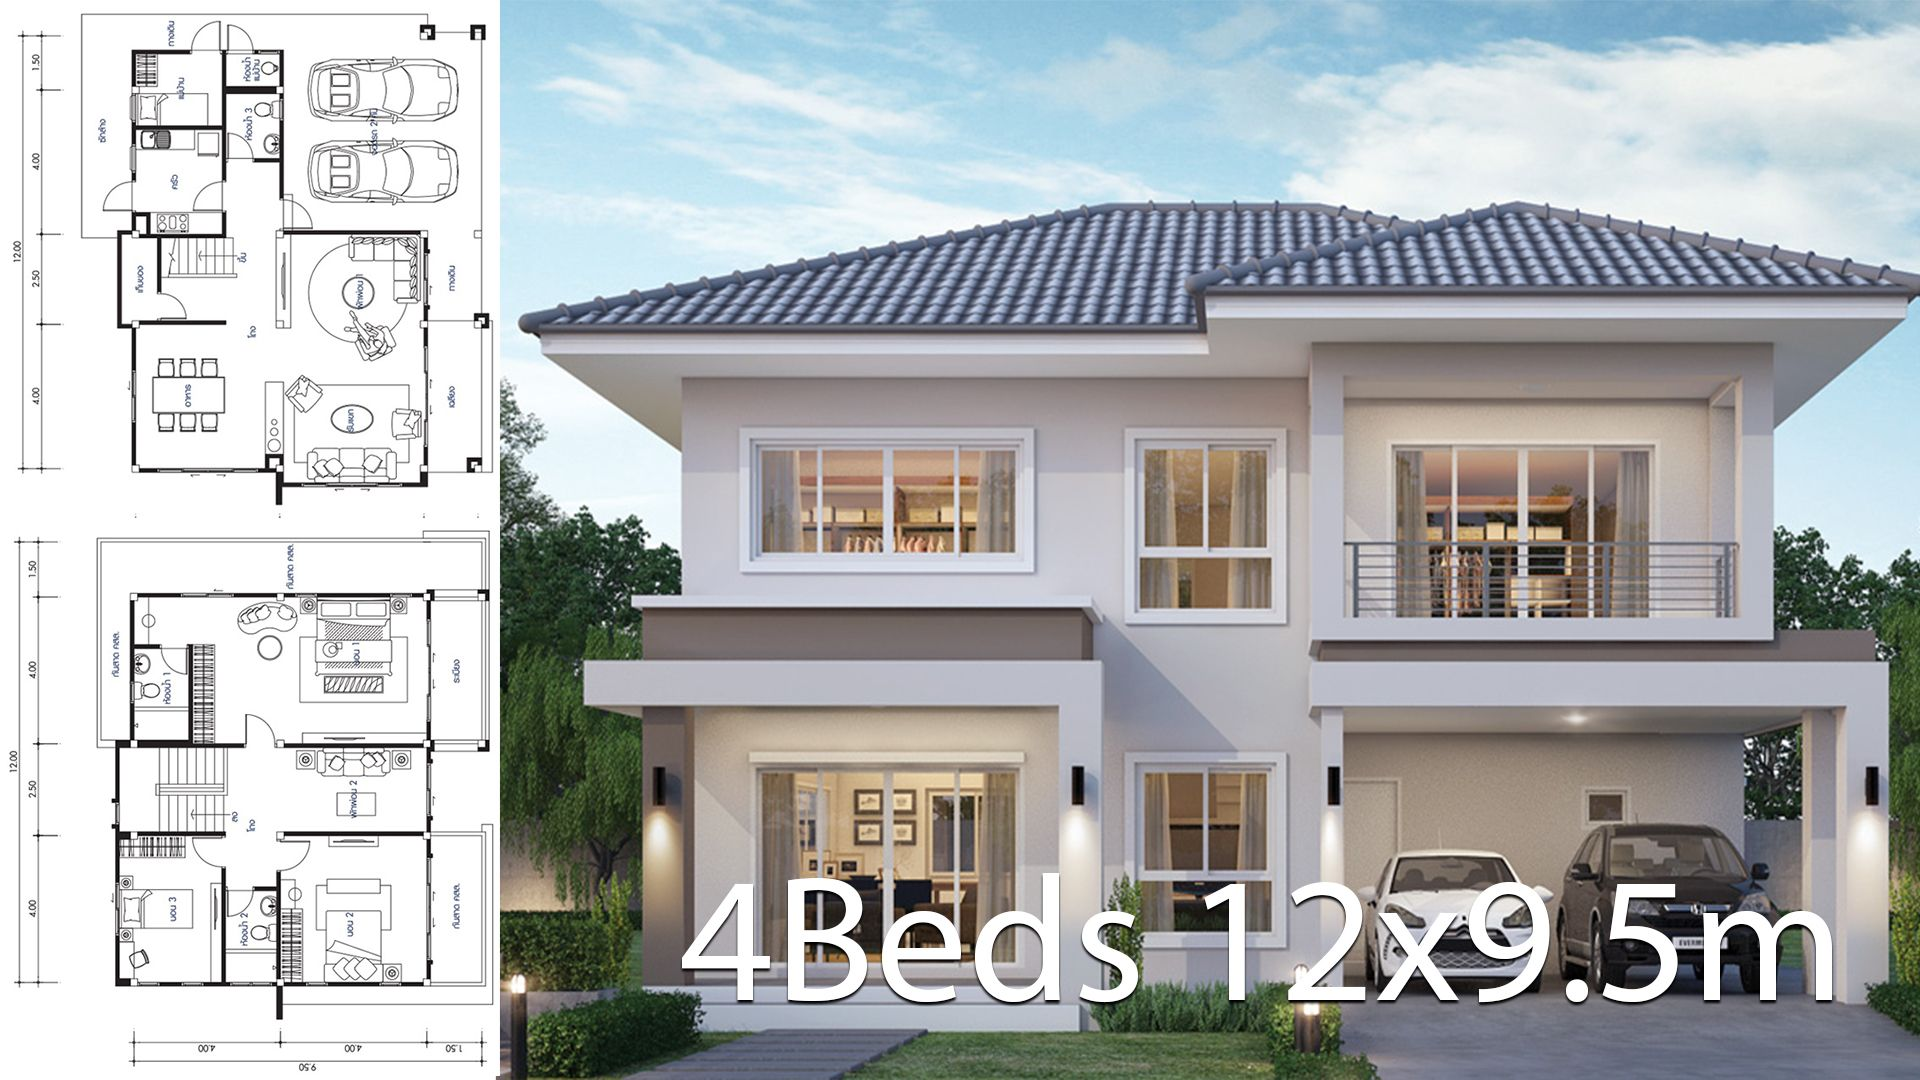 House Design Plan 12x9 5m With 4 Bedrooms Philippines House Design Architectural House Plans Home Design Plans